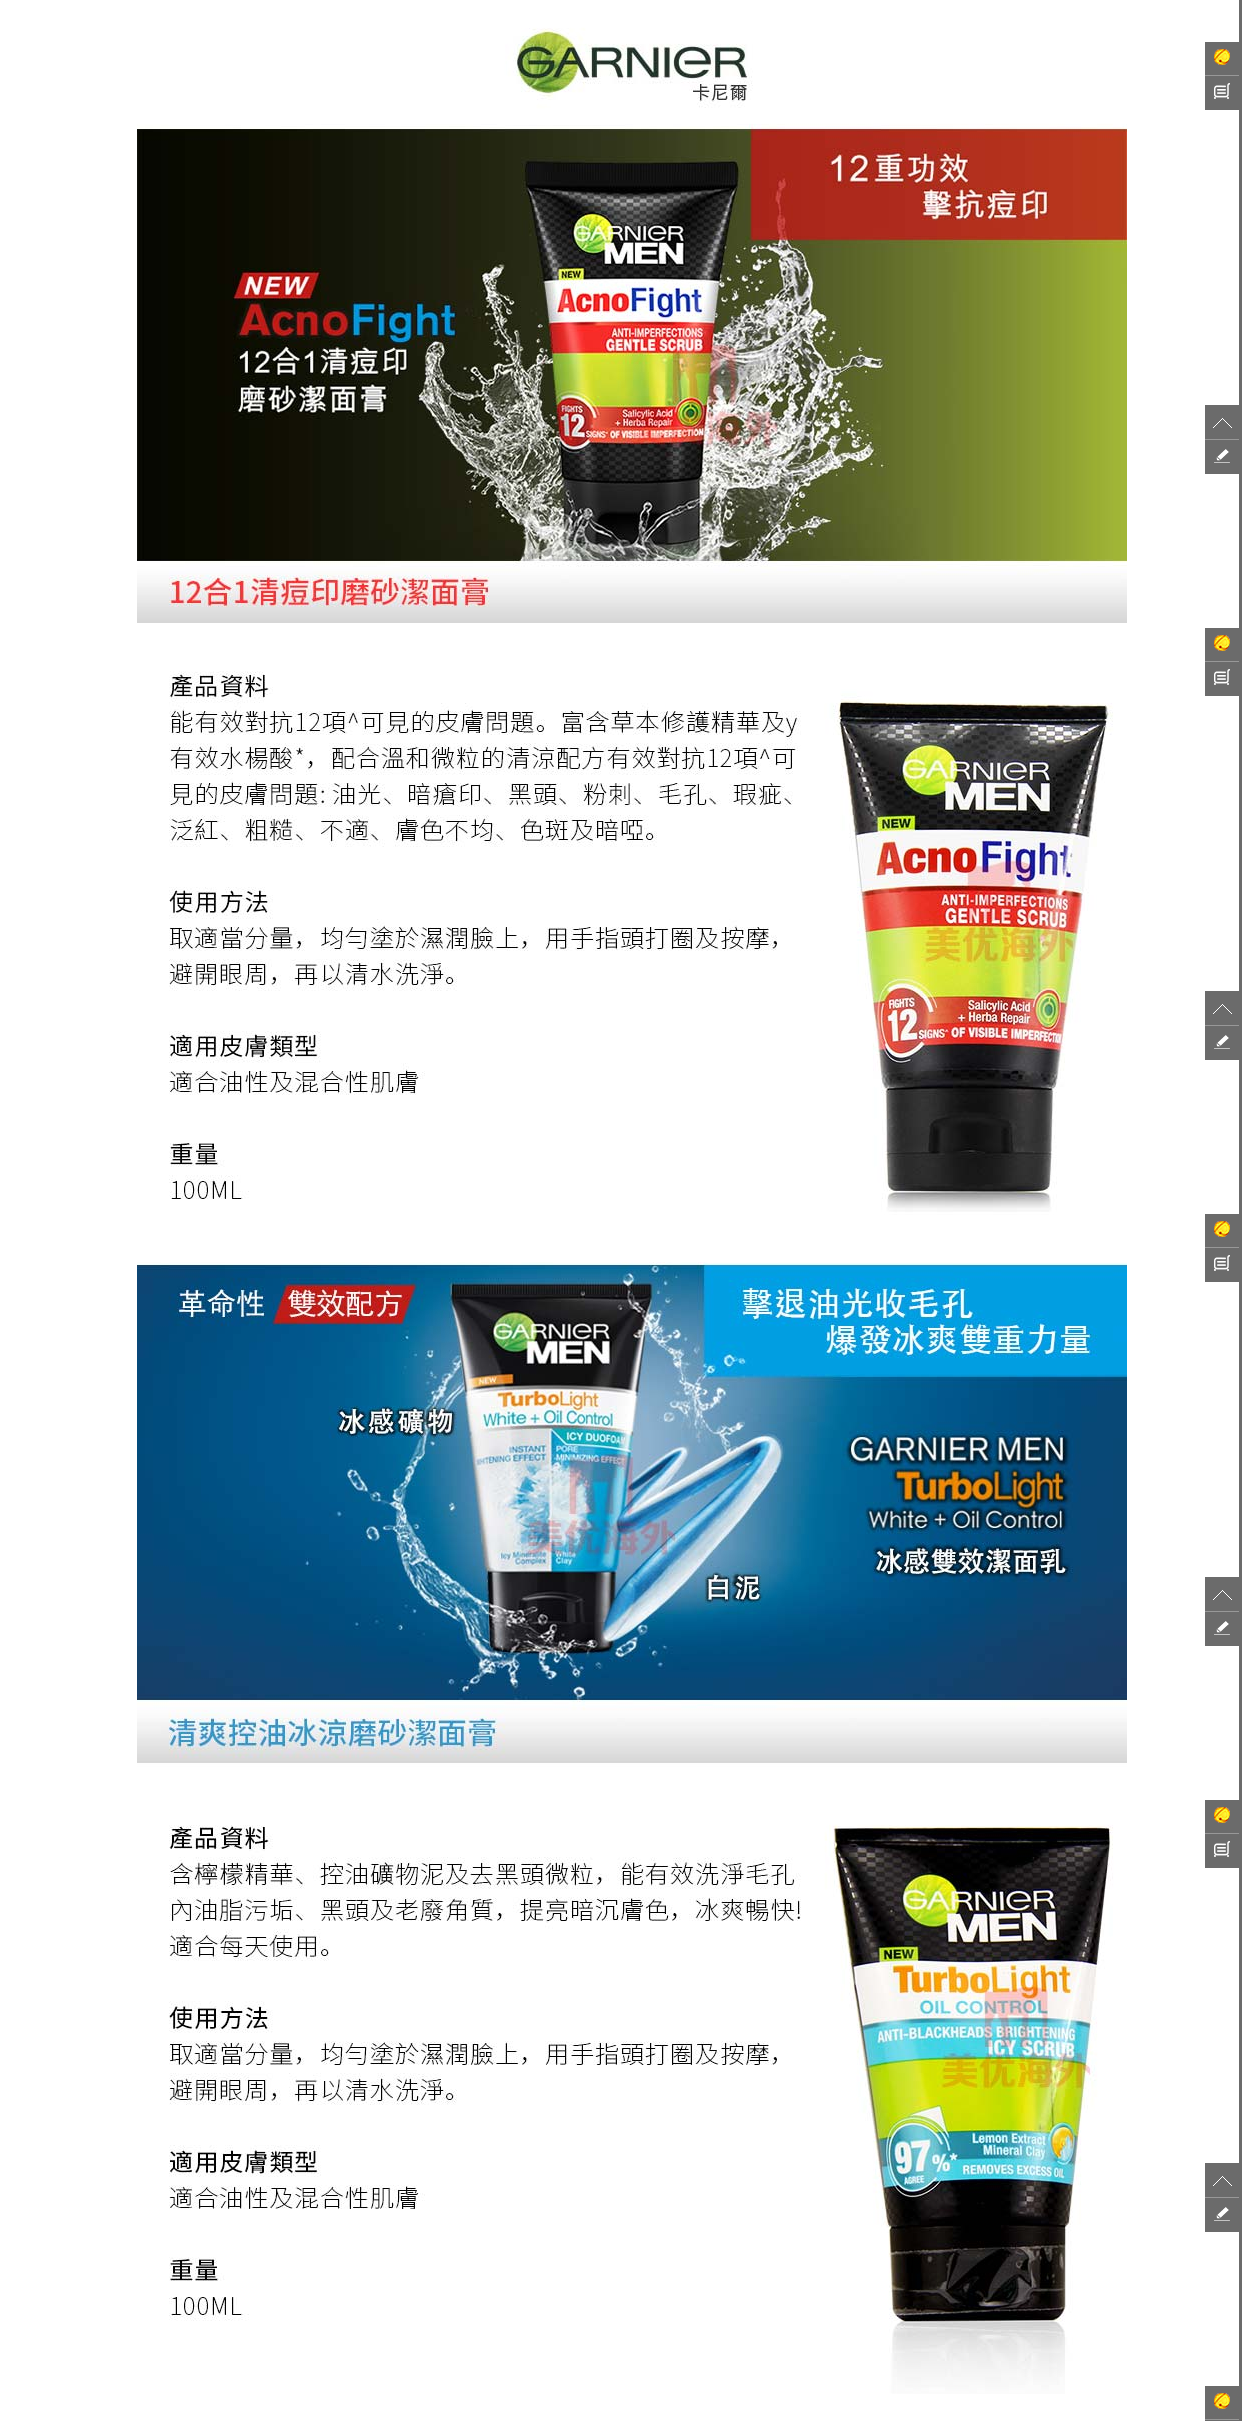 Garnier 1 JD Ecom Horizons e-commerce crossborder China